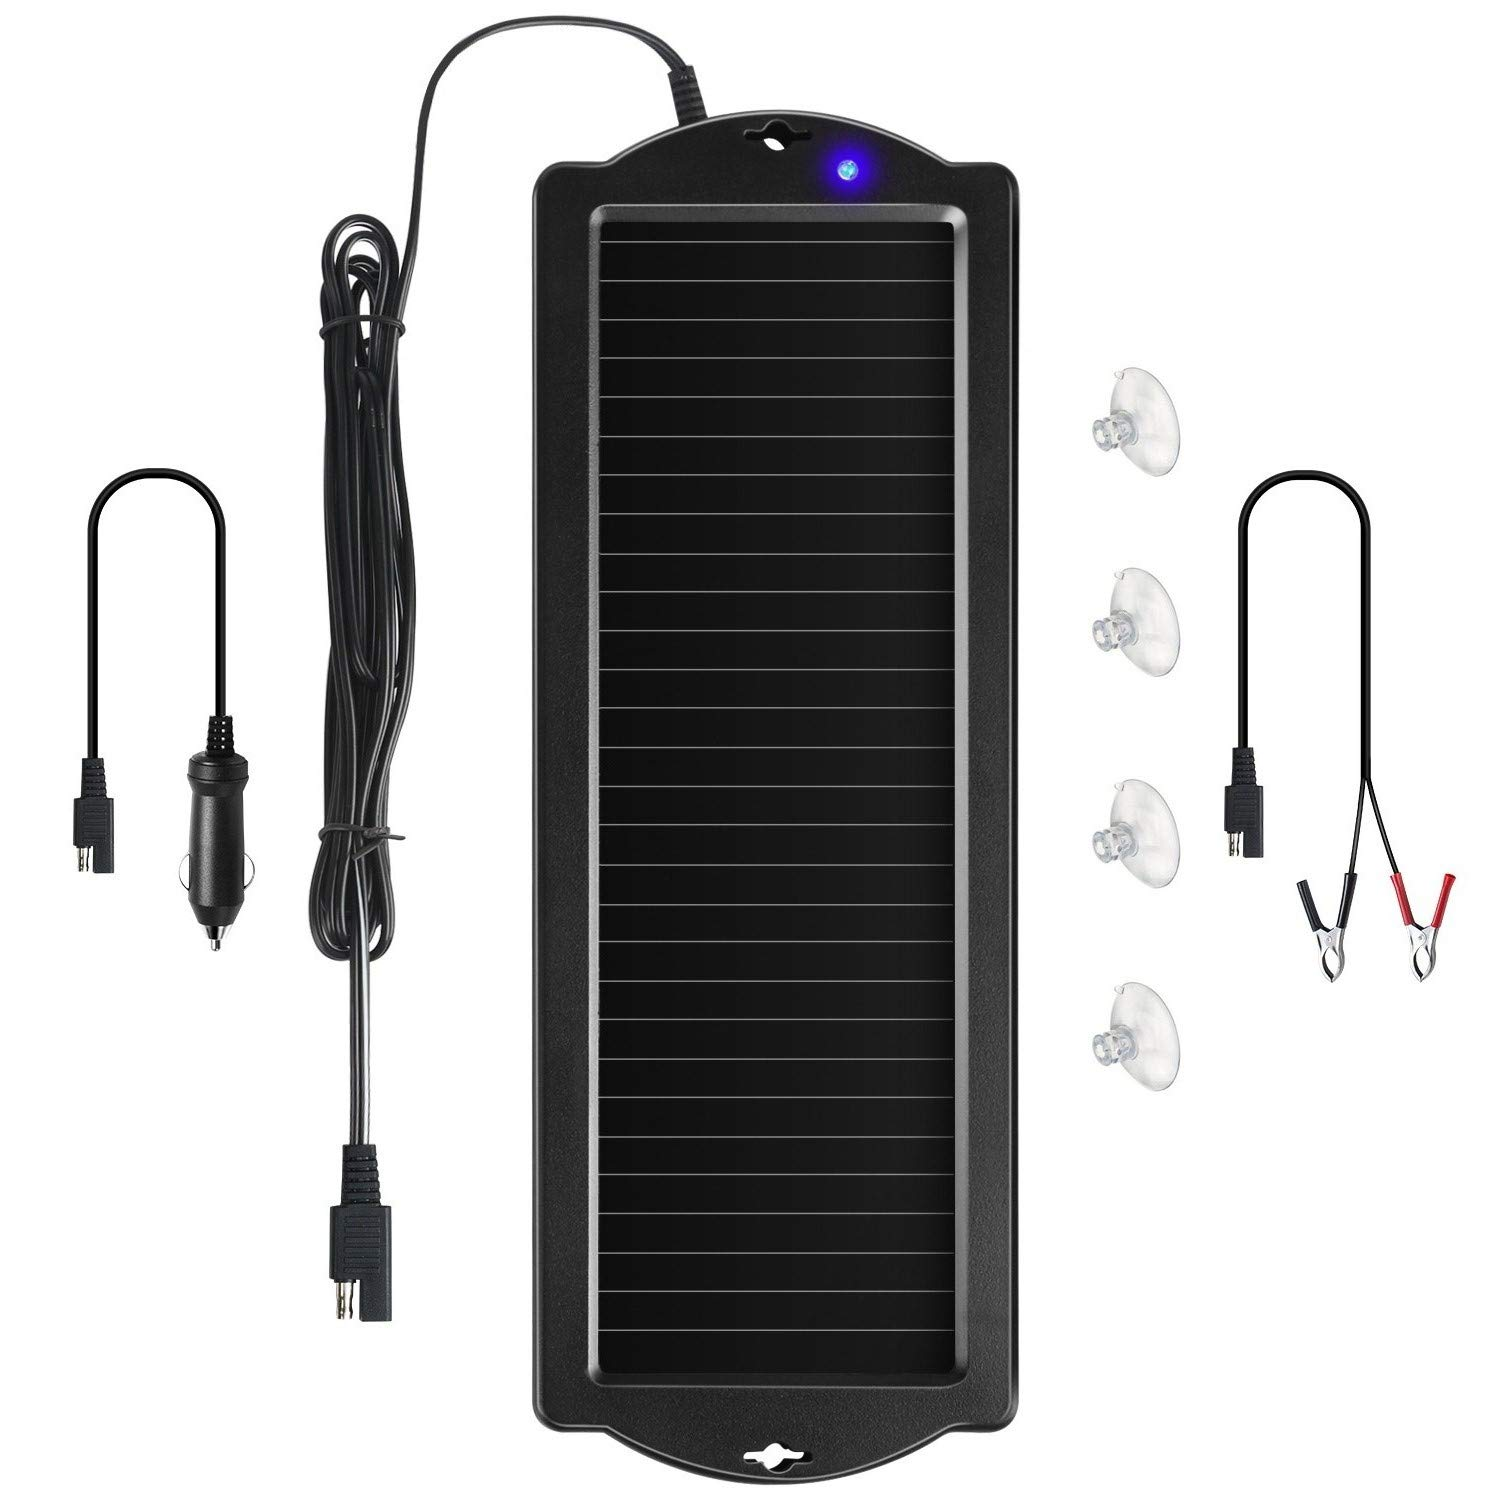 Sunway Solar Car Battery Trickle Charger & Maintainer 12V Solar Panel Power Battery Charger With Cigarette Lighter Plug Battery Clamp For Car Automotive Motorcycle Boat Marine Snowmobile Watercraft RV by Sunway Solar